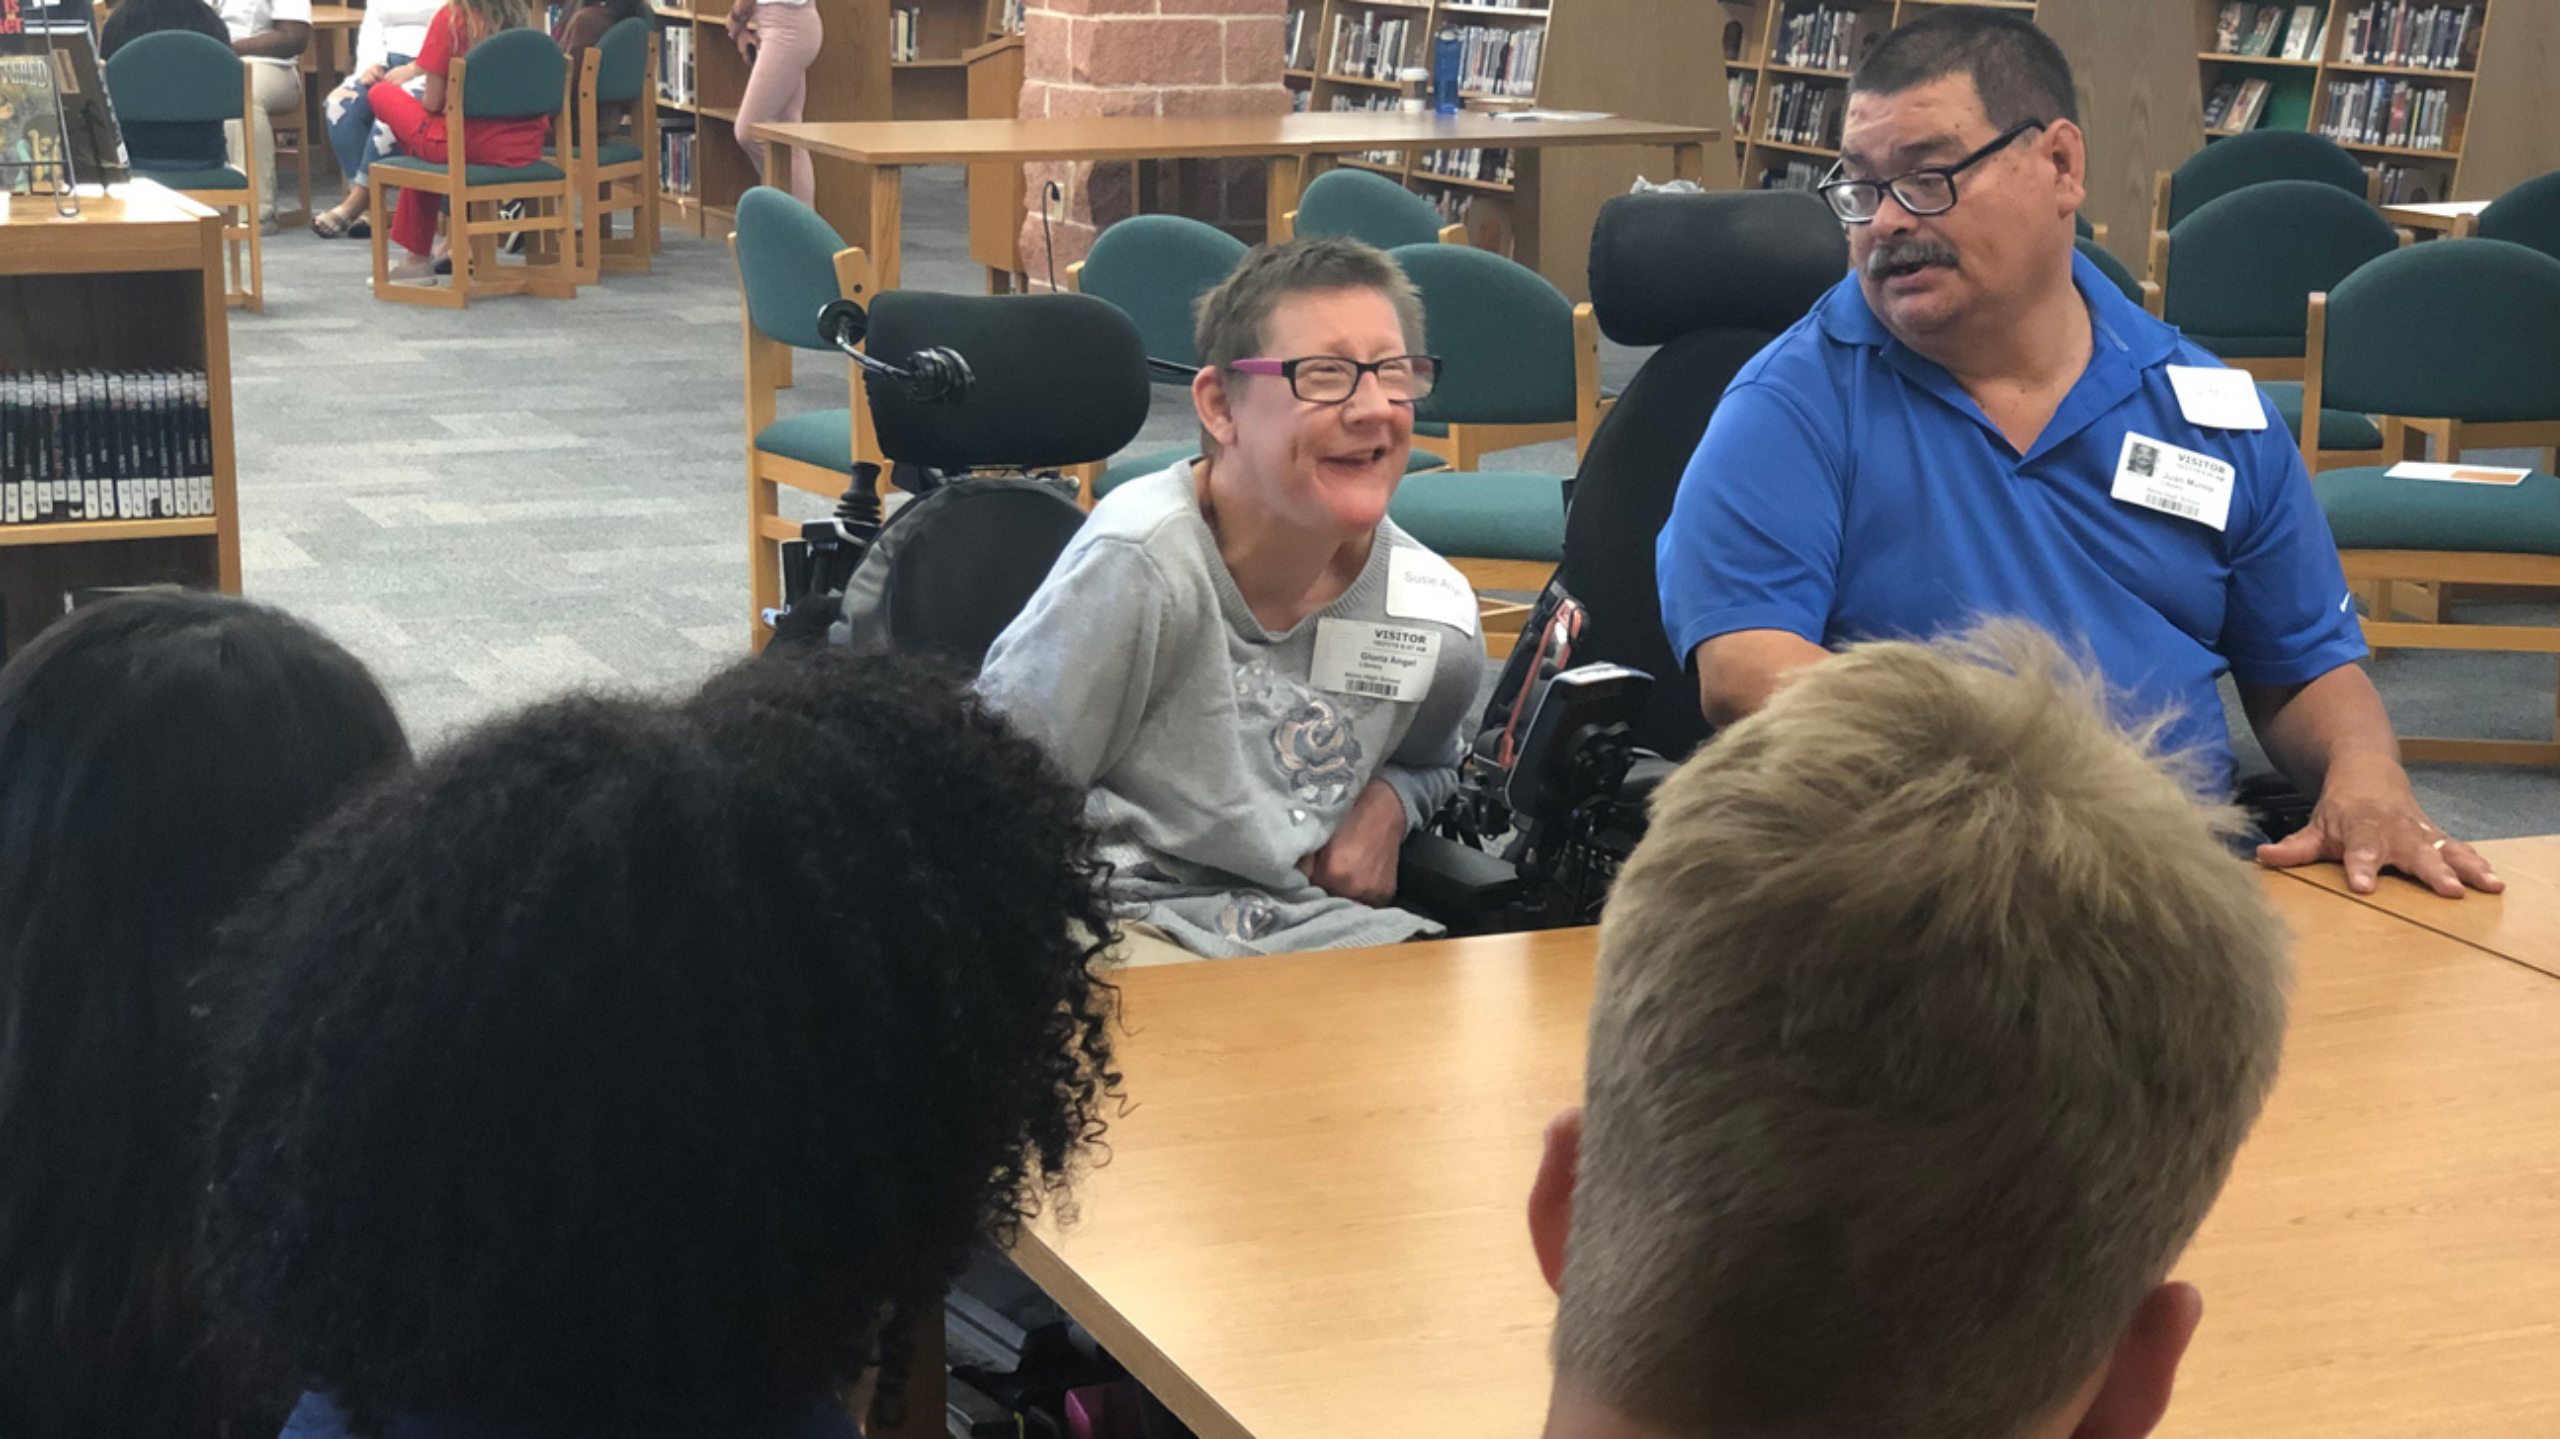 A man and a woman in wheelchairs speak to a group of students sitting at a table.